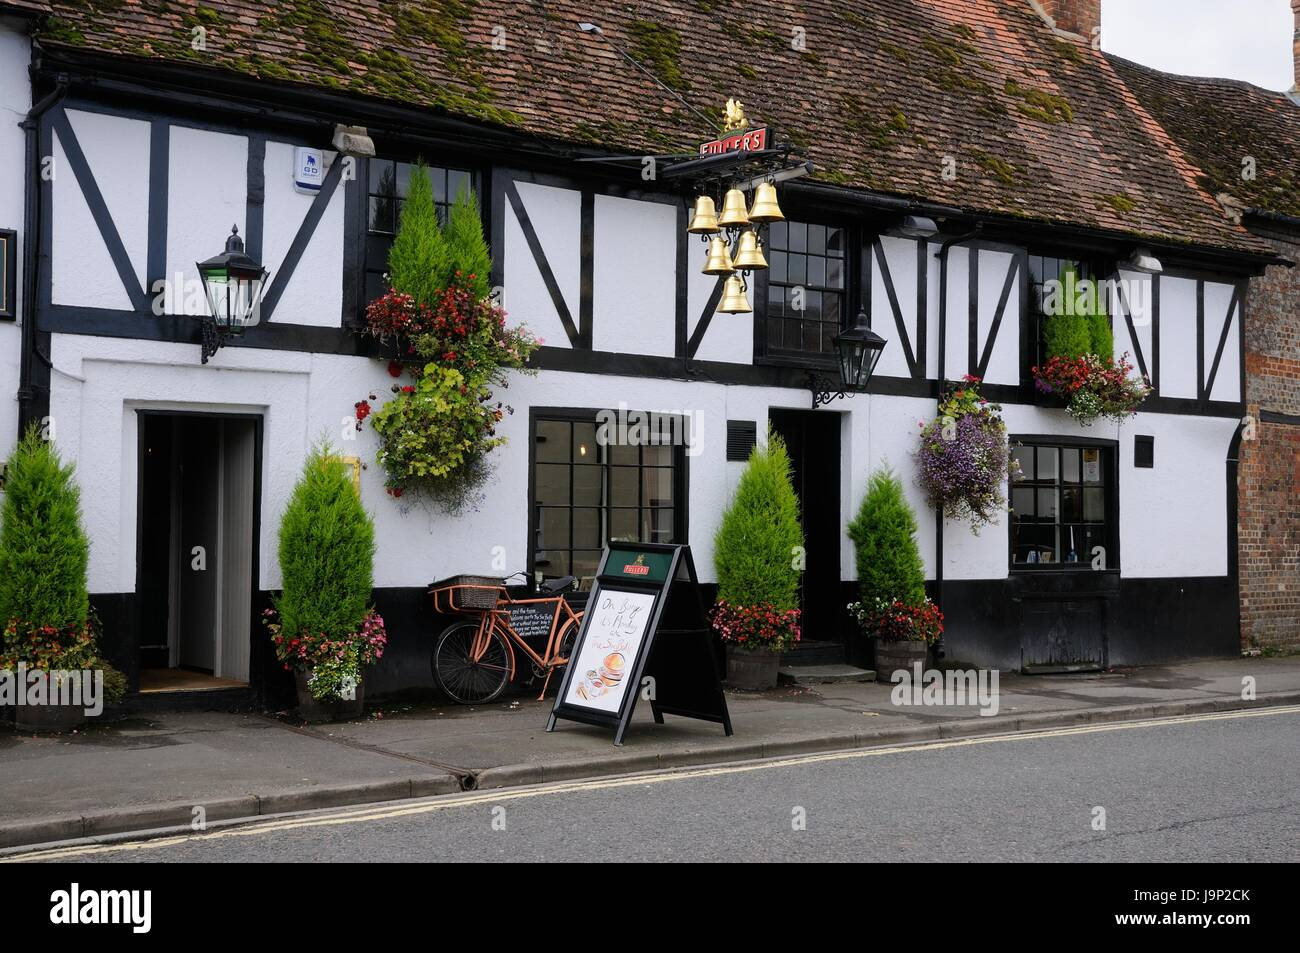 The Six Bells, Thame, Oxfordshire, was originally built in 1560 - Stock Image